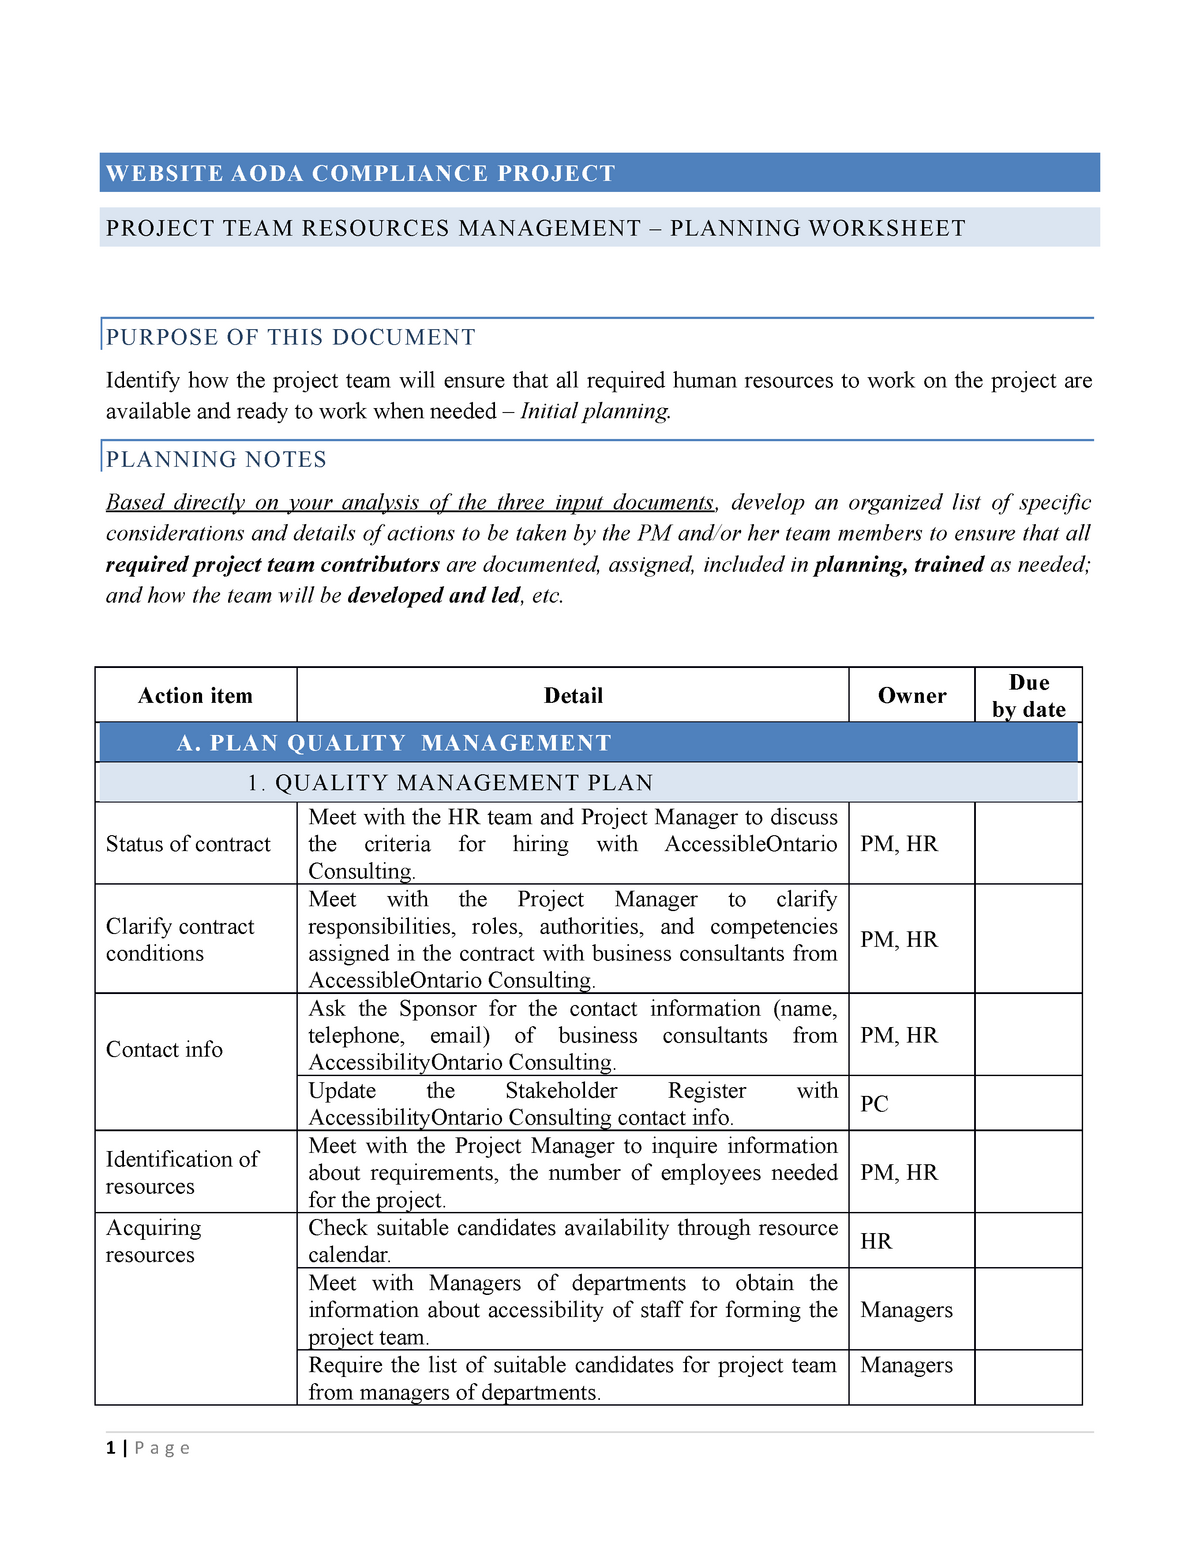 Final Draft) Project Human Resource Management Planning